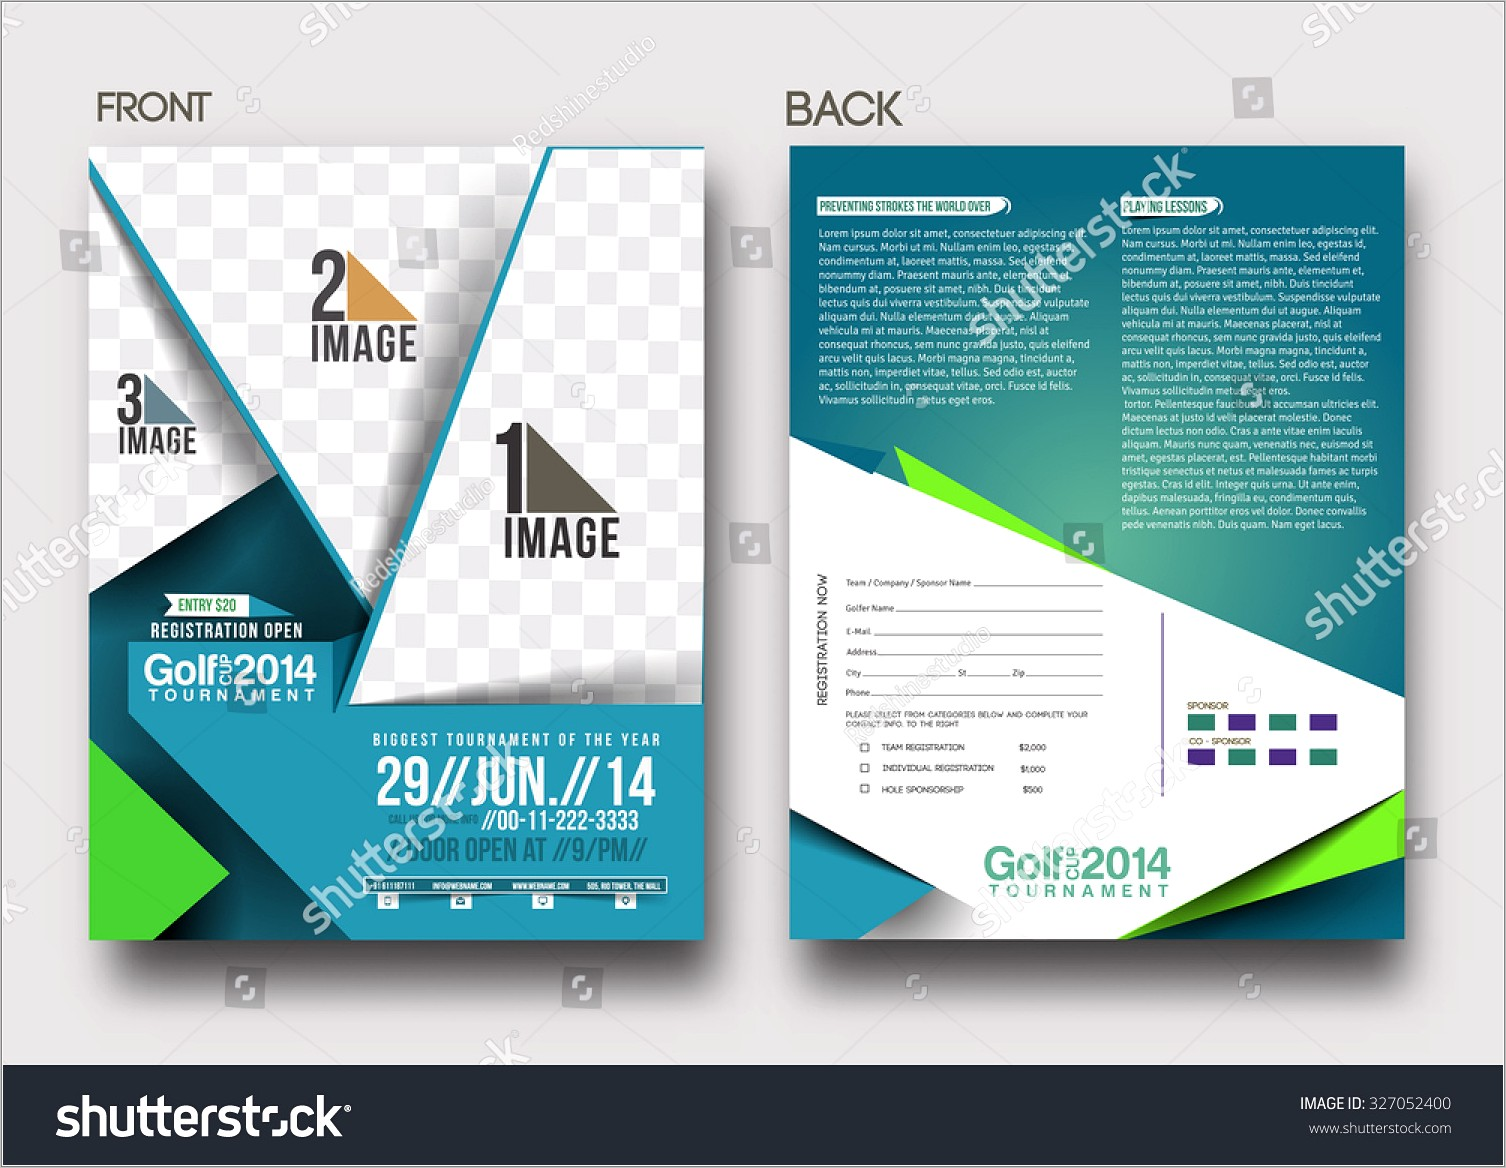 Golf Tournament Front Back Flyer Template